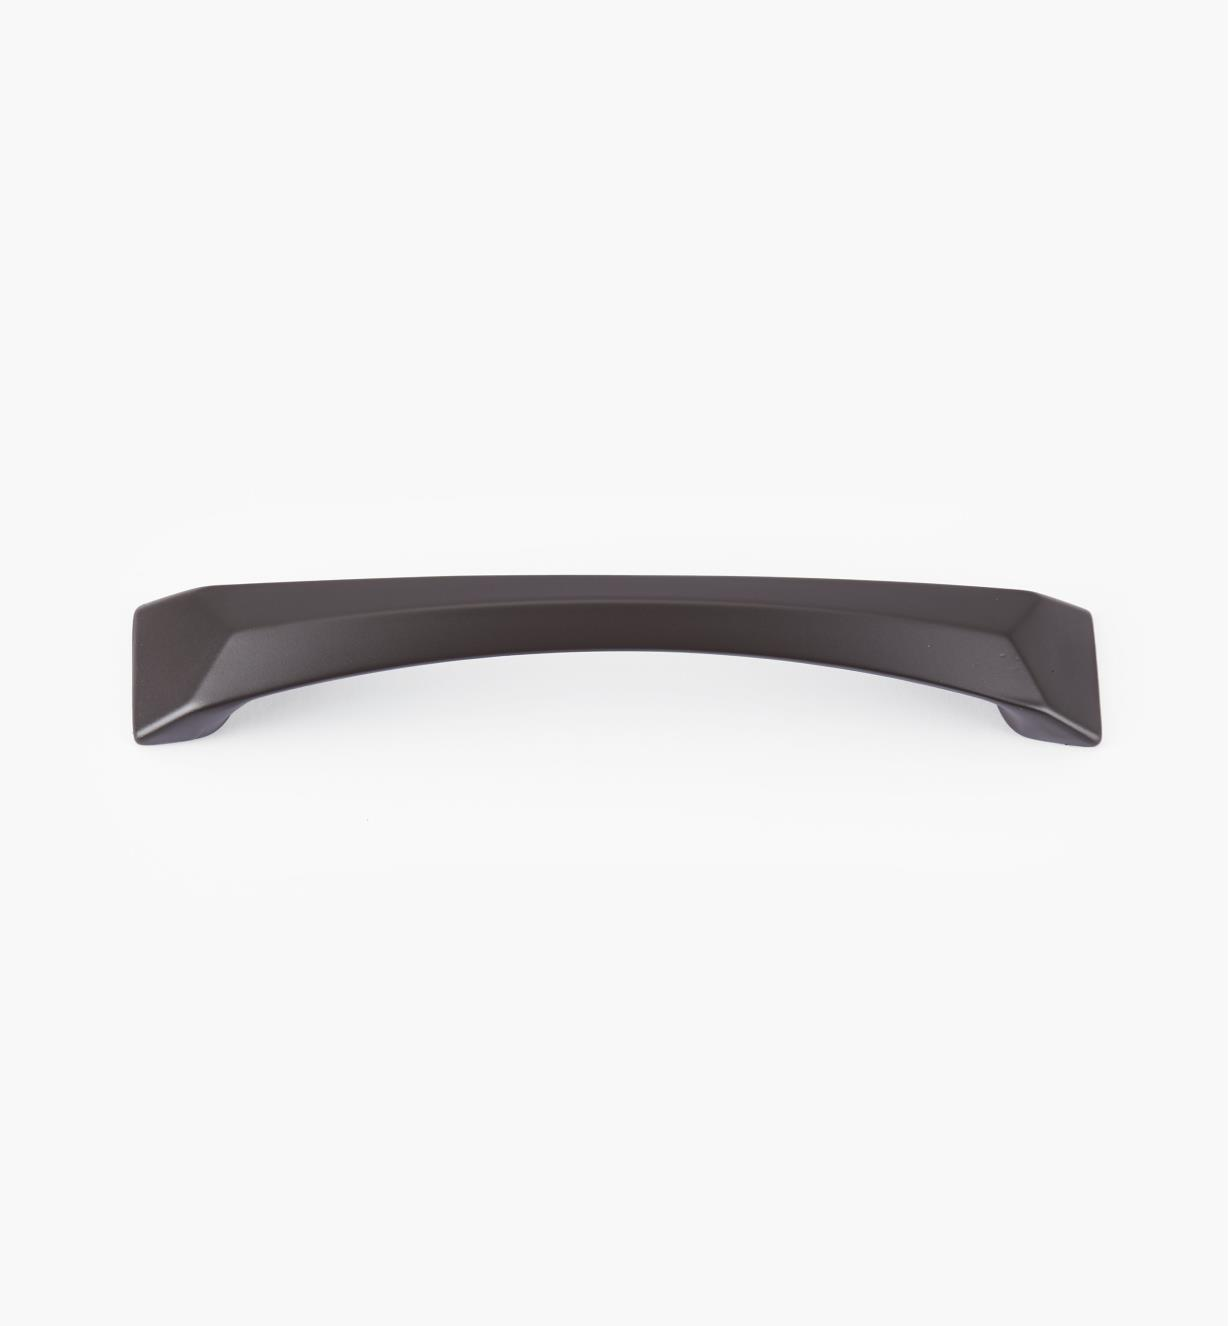 02W3423 - 128mm Oil-Rubbed Bronze Handle